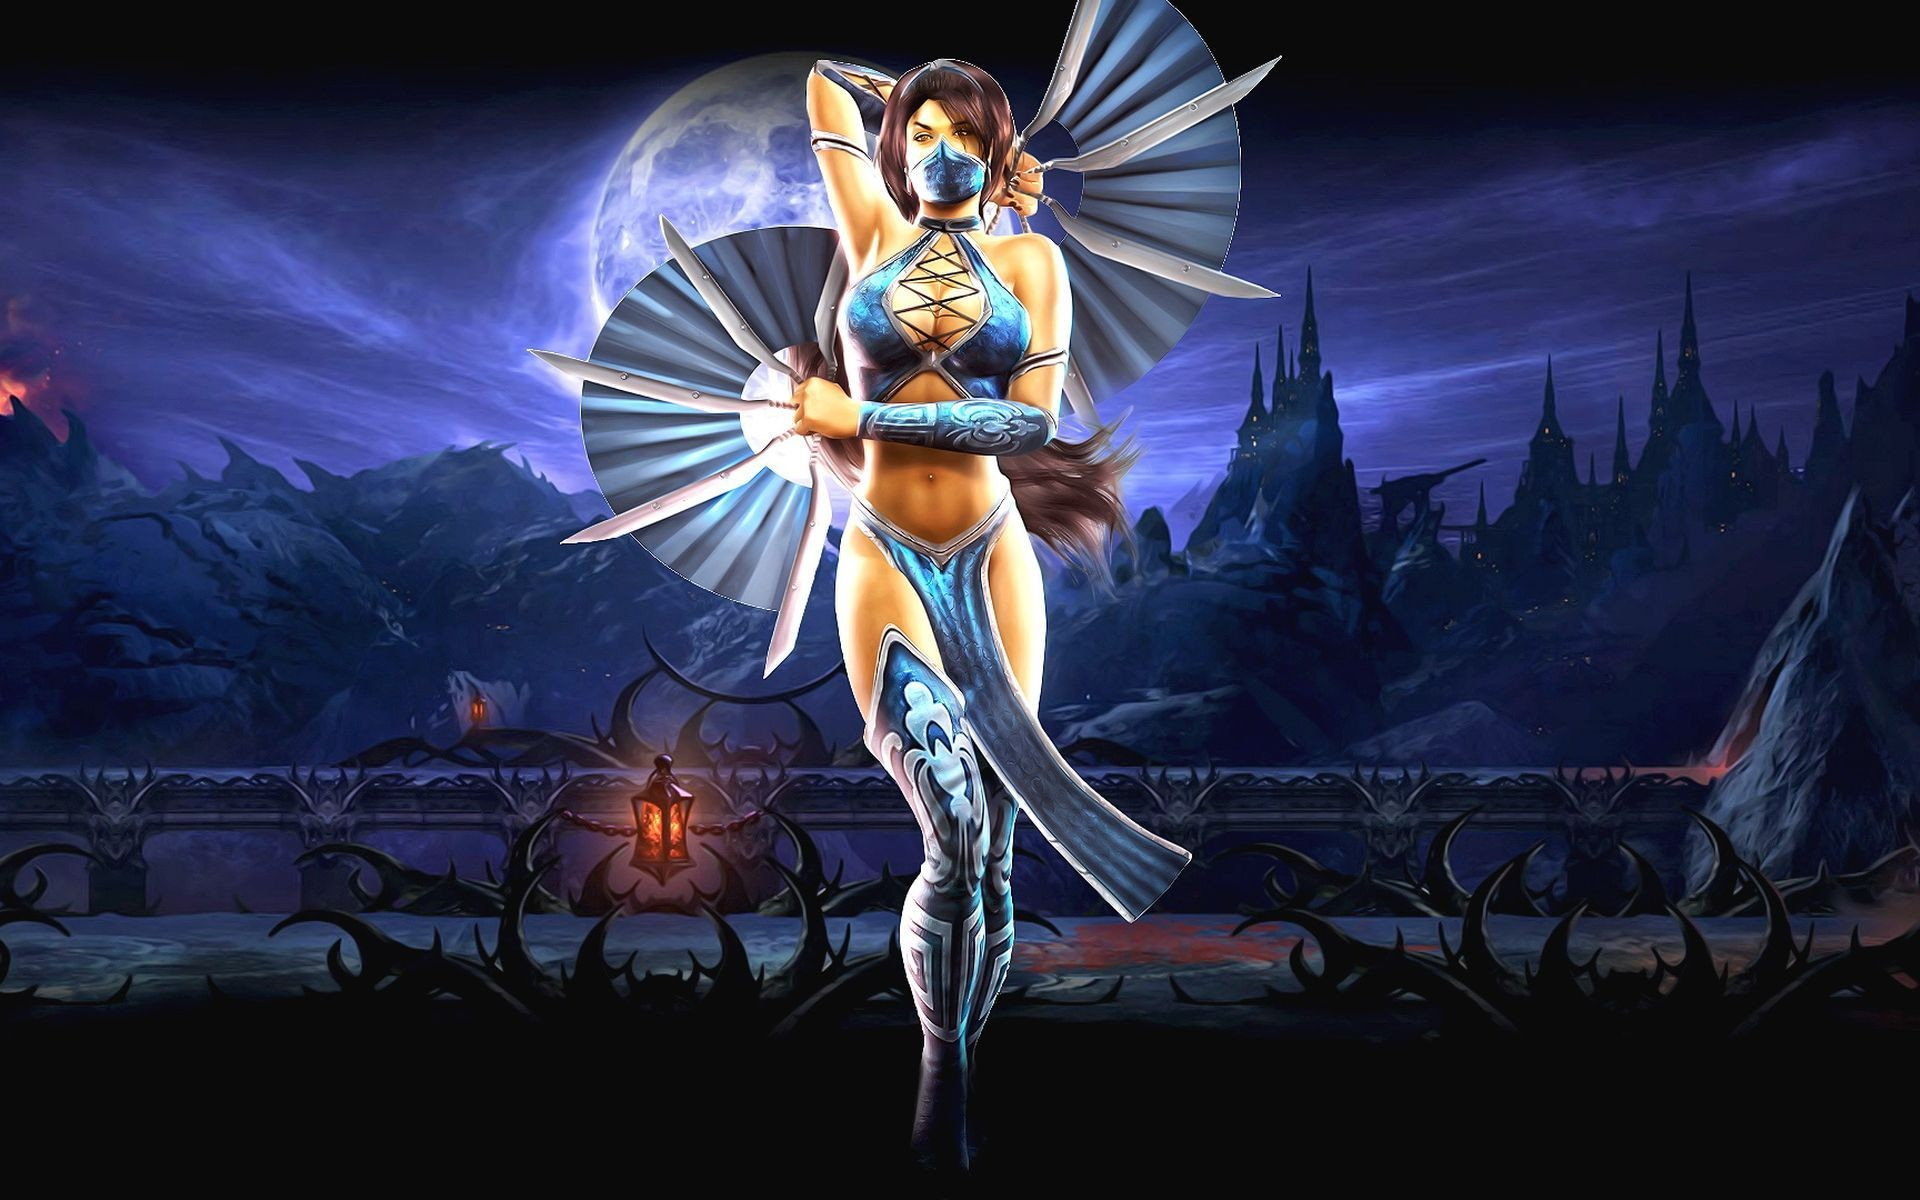 1920x1200 Mortal Kombat wallpaper Kitana with fans Read more